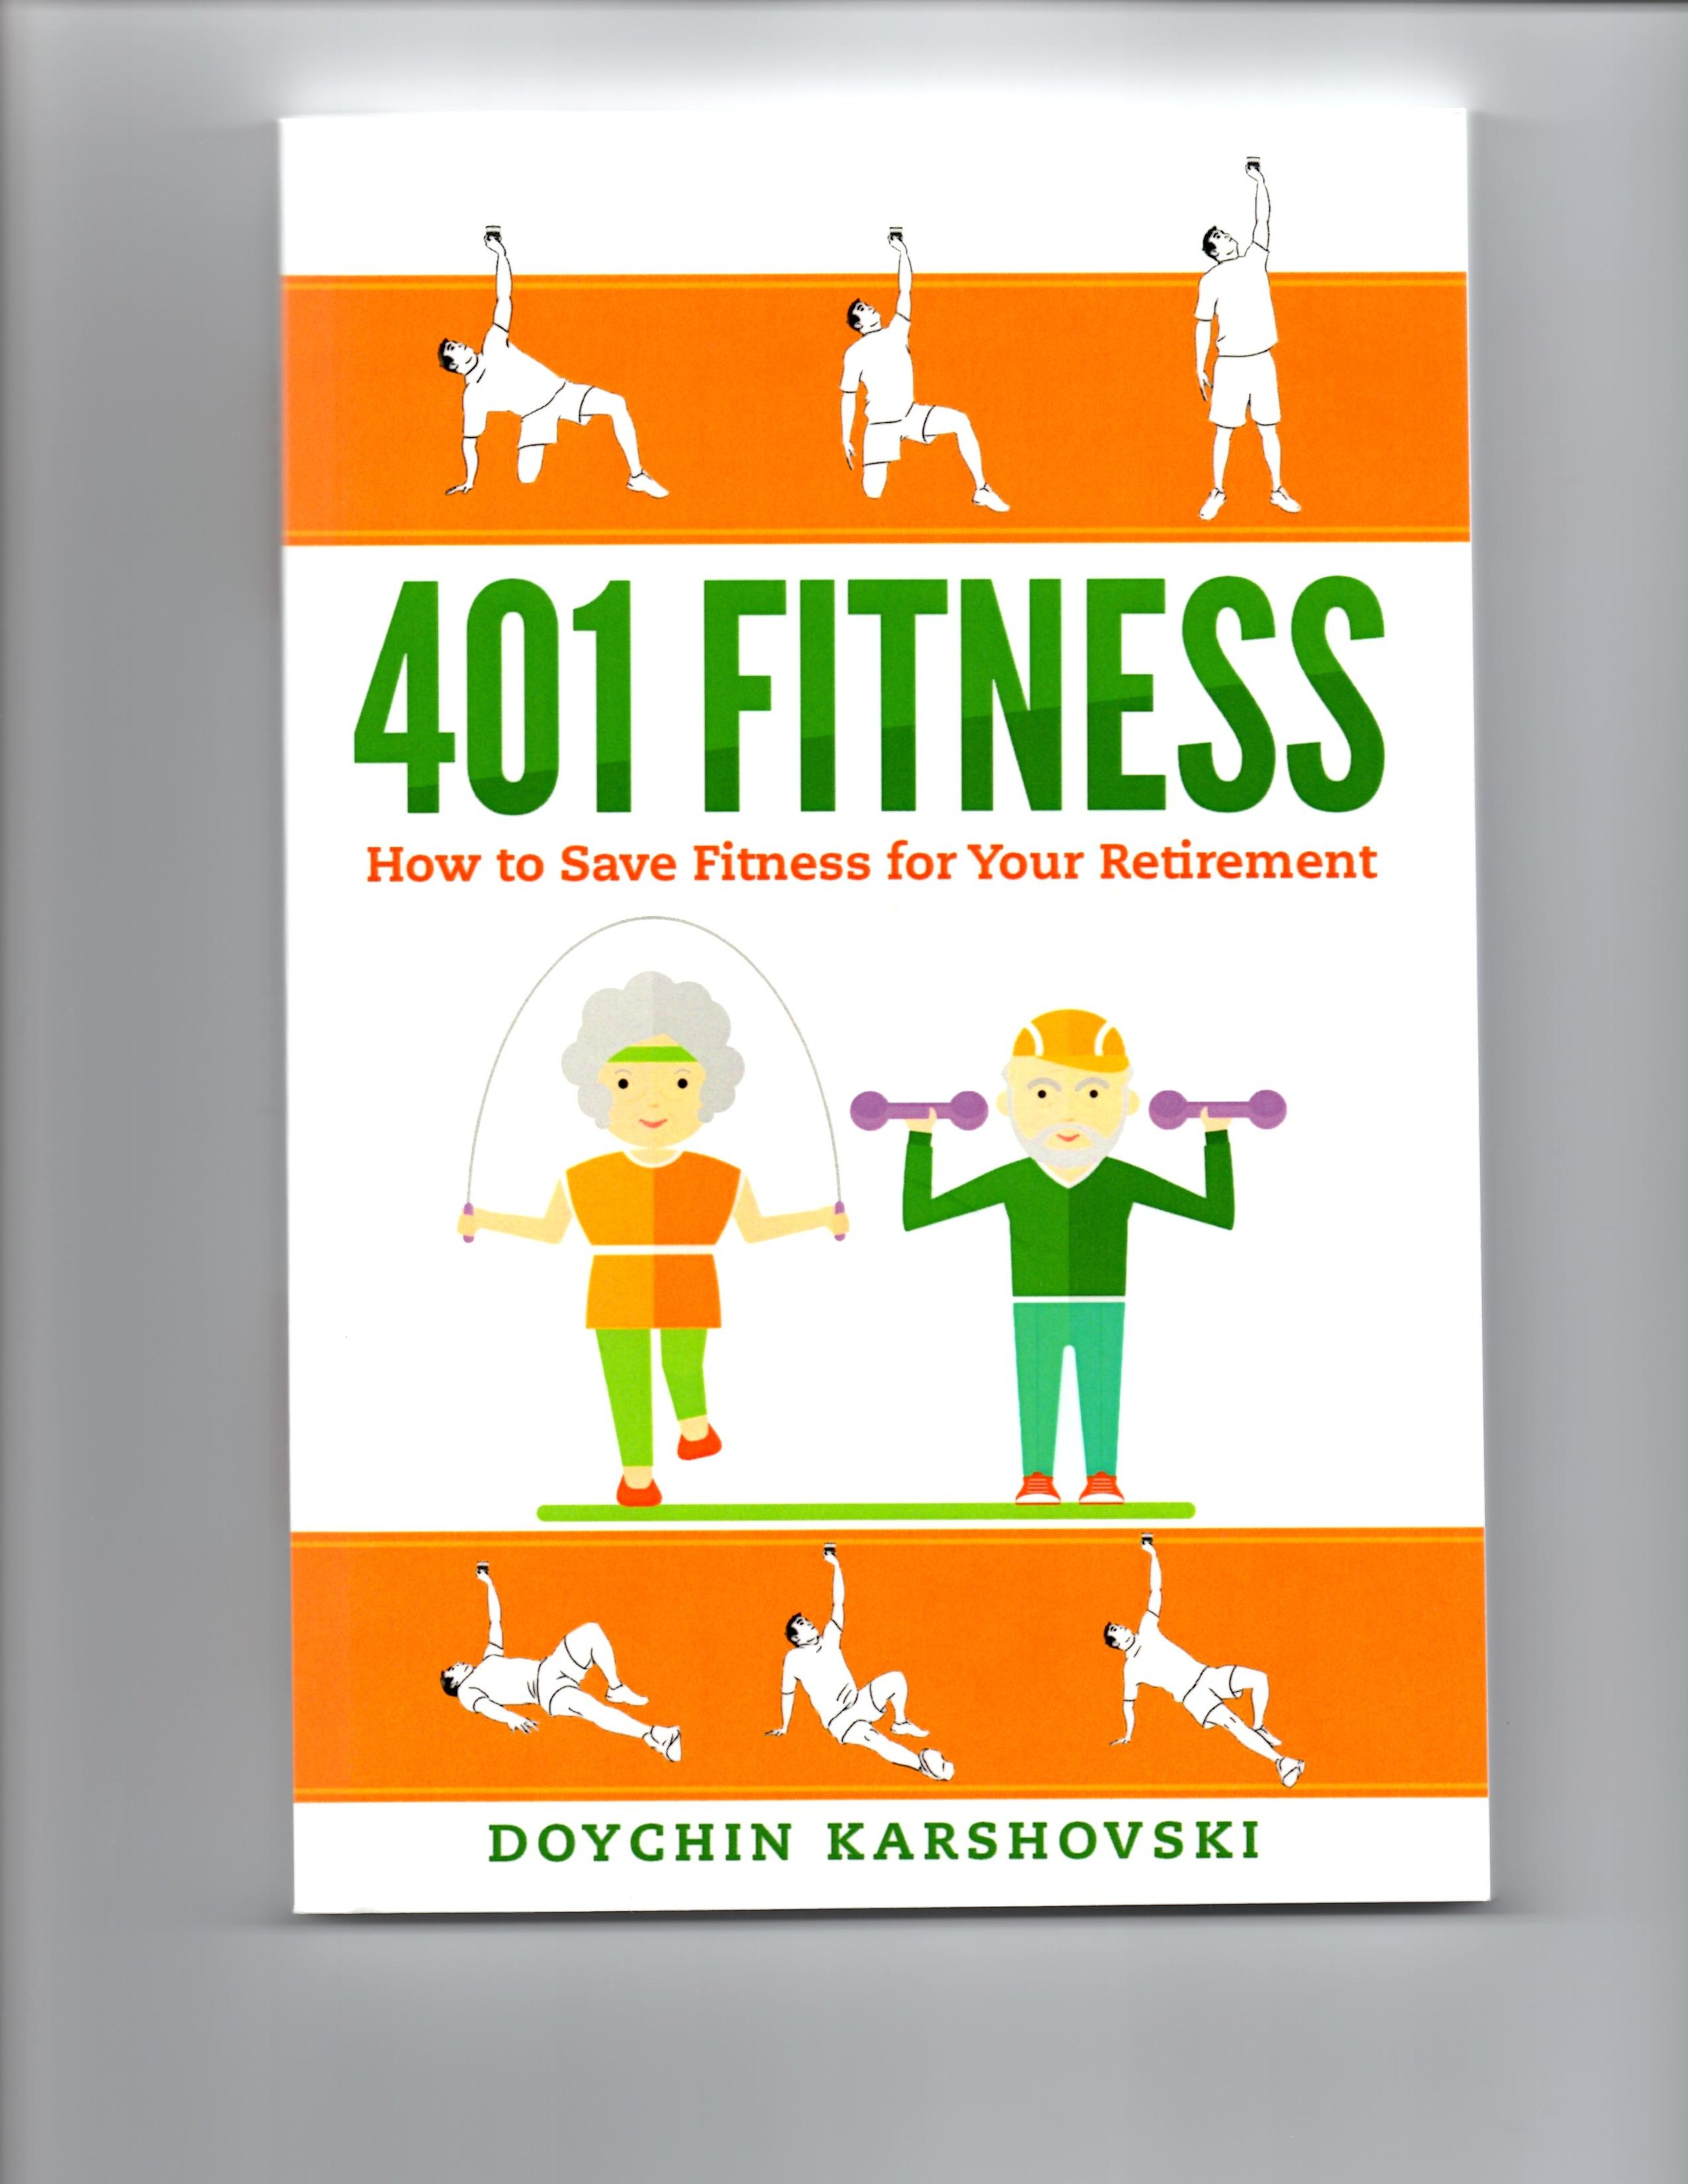 "March 2018, Doychin Karshovsky : This former Bulgarian Marine, Olympic athlete and personal trainer ""has fitness plan for you."" He believes fitness is like a 401-k retirement plan: If you don't invest now, you will have nothing to draw from later."